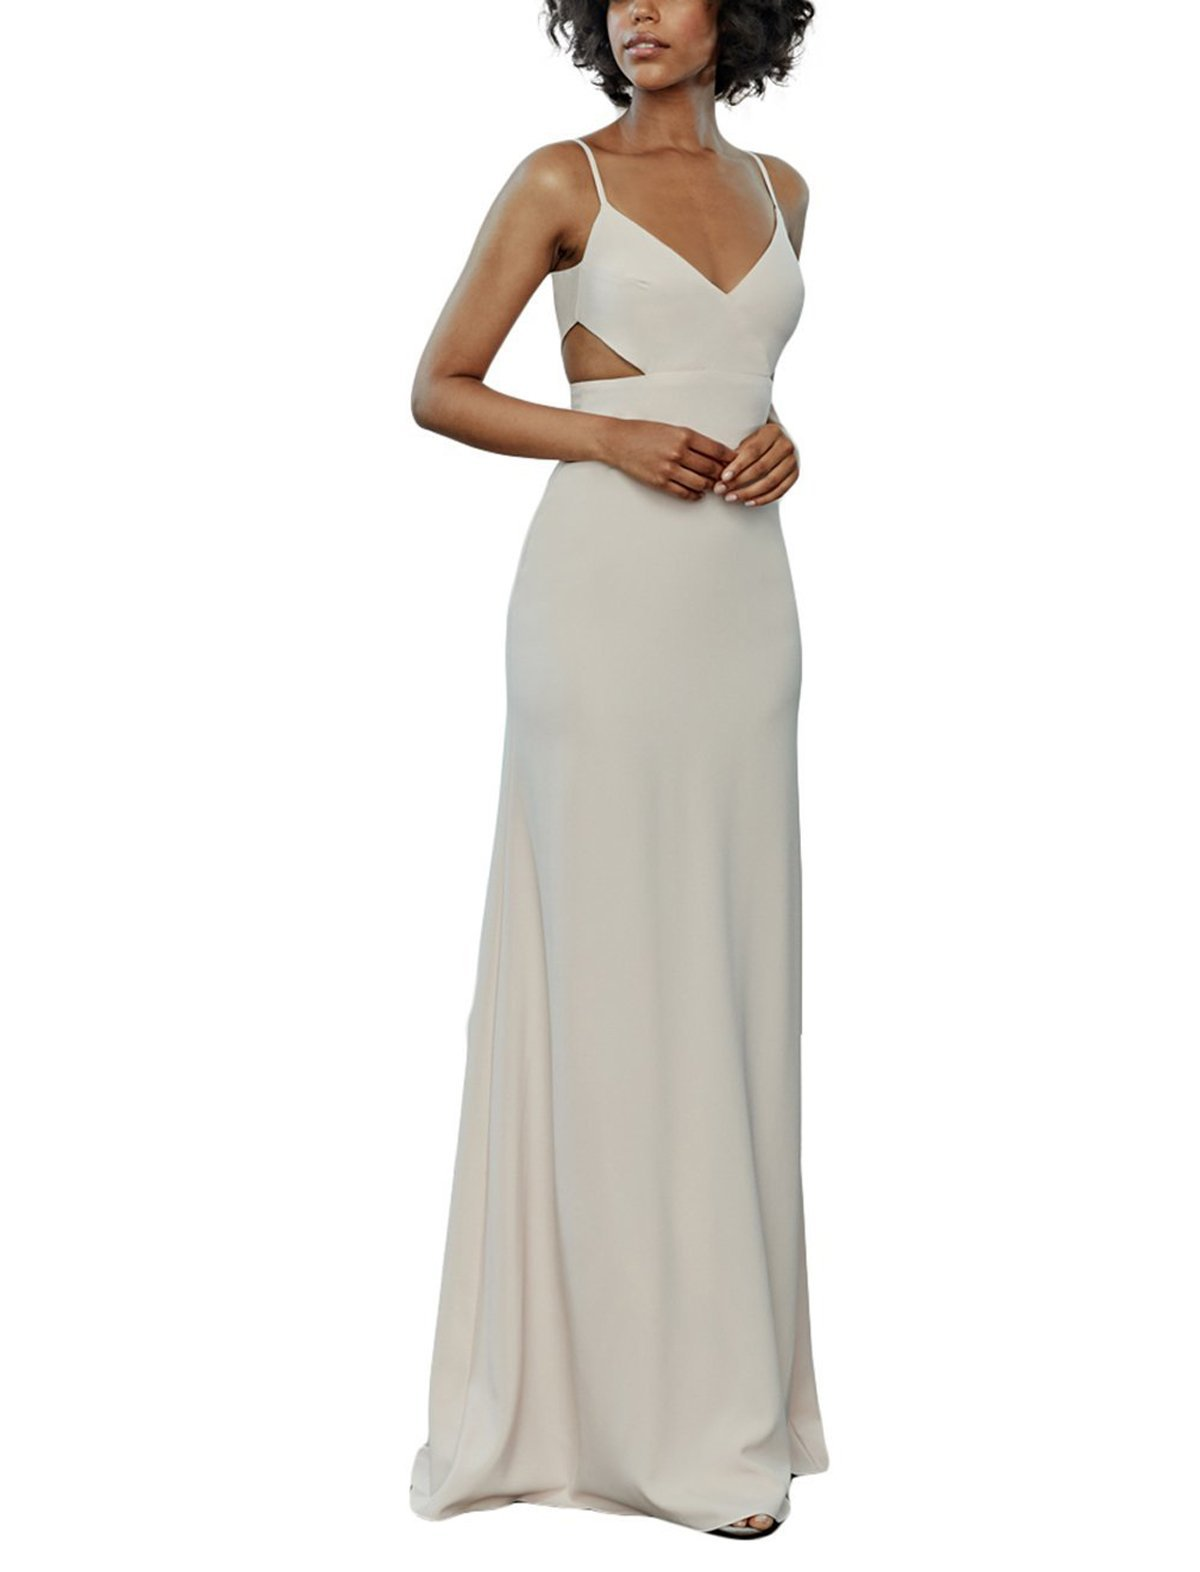 Amsale Shiloh Bridesmaid Dress